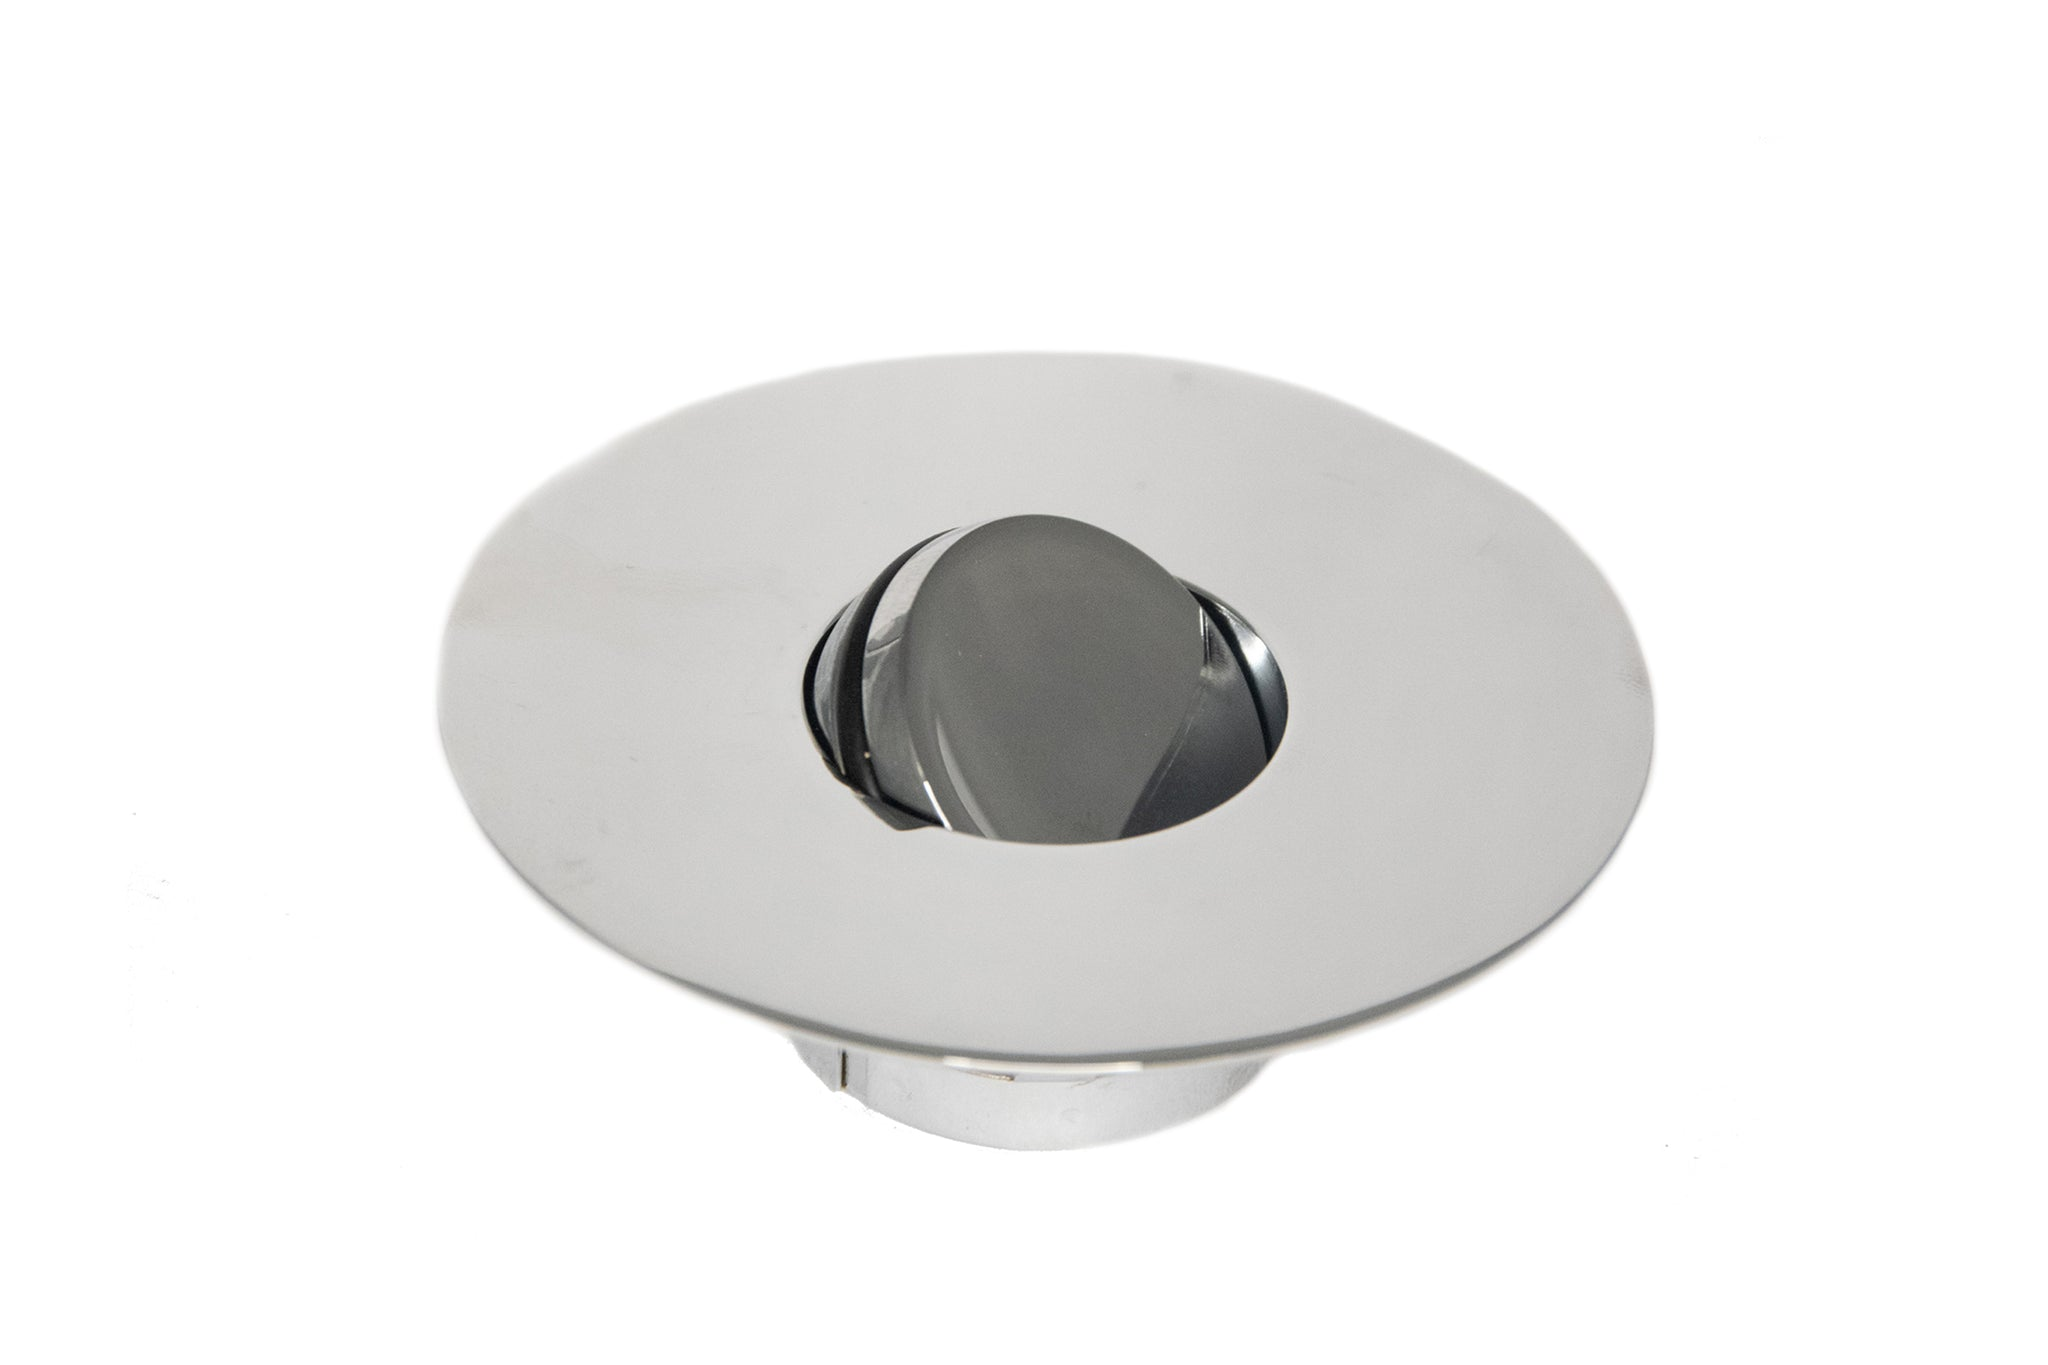 Small Non-Threaded Bathtub Flip-Top Drain Stopper with Snap-In Flange